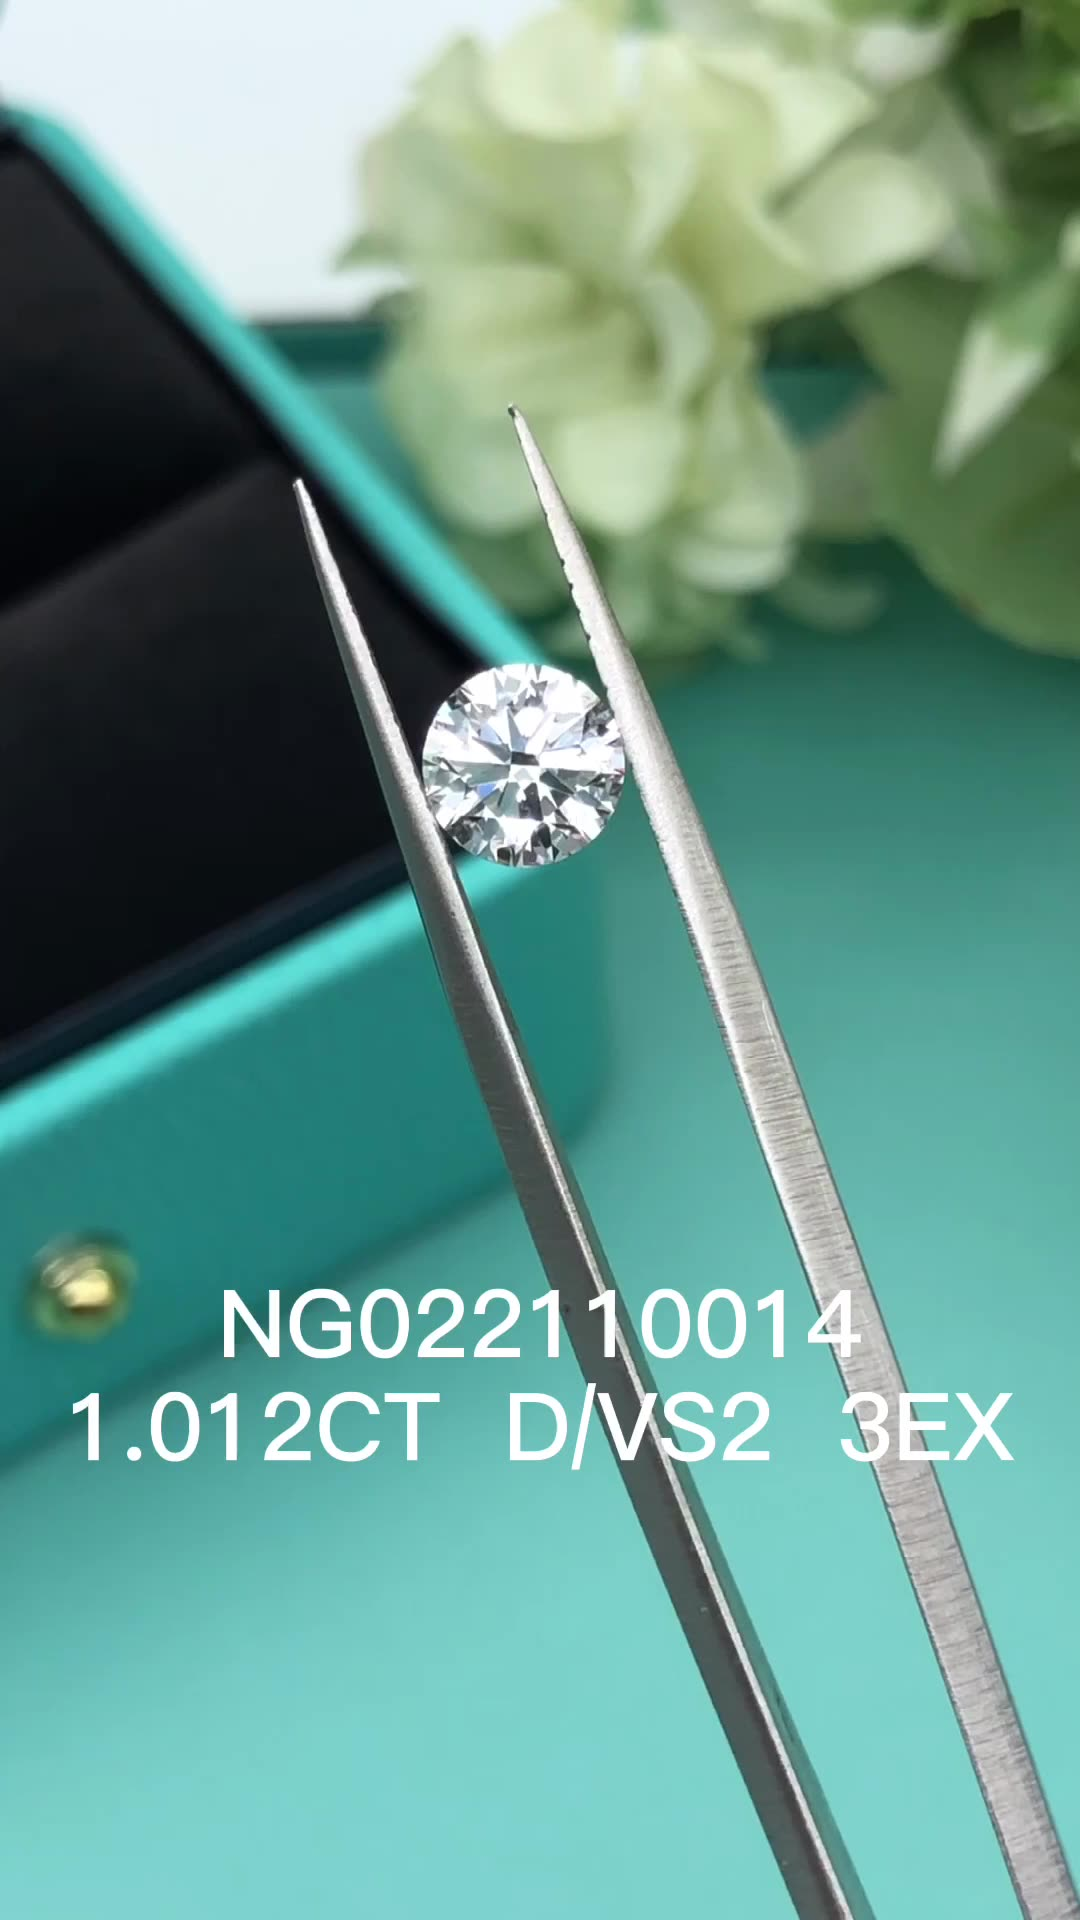 Loose 1carat D VS2 3EX good quality synthetic HPHT CVD lab grown diamond